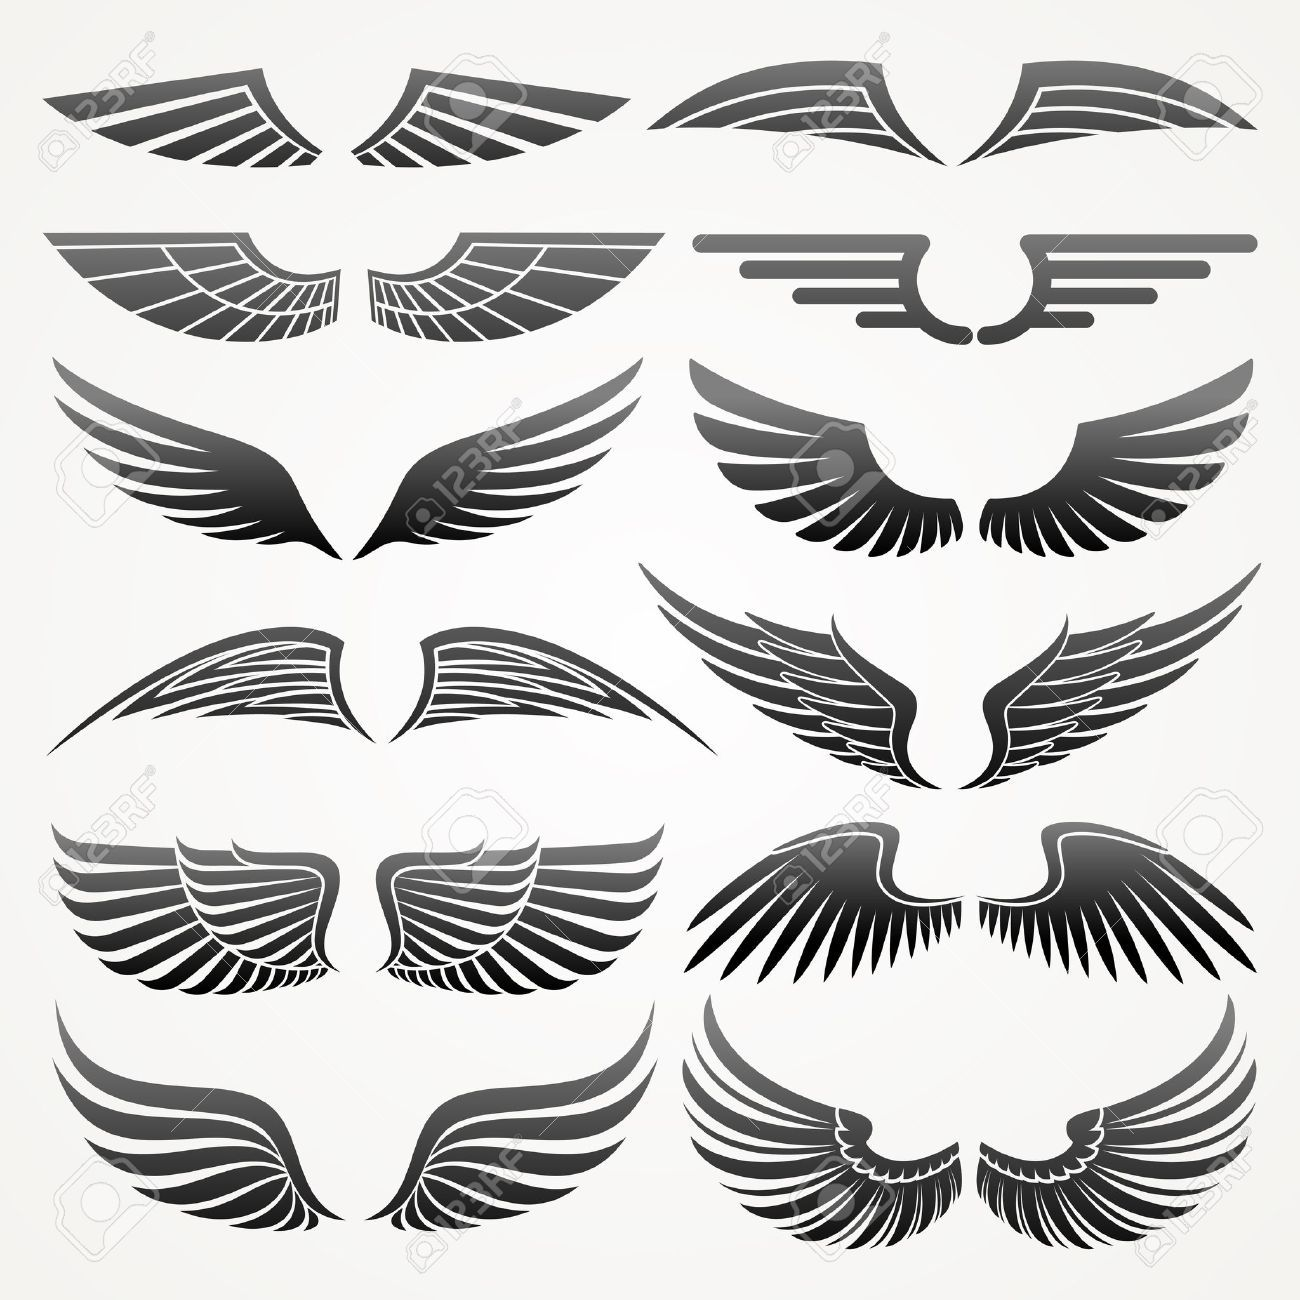 Stock Vector Wings drawing, Wings logo, Illustration